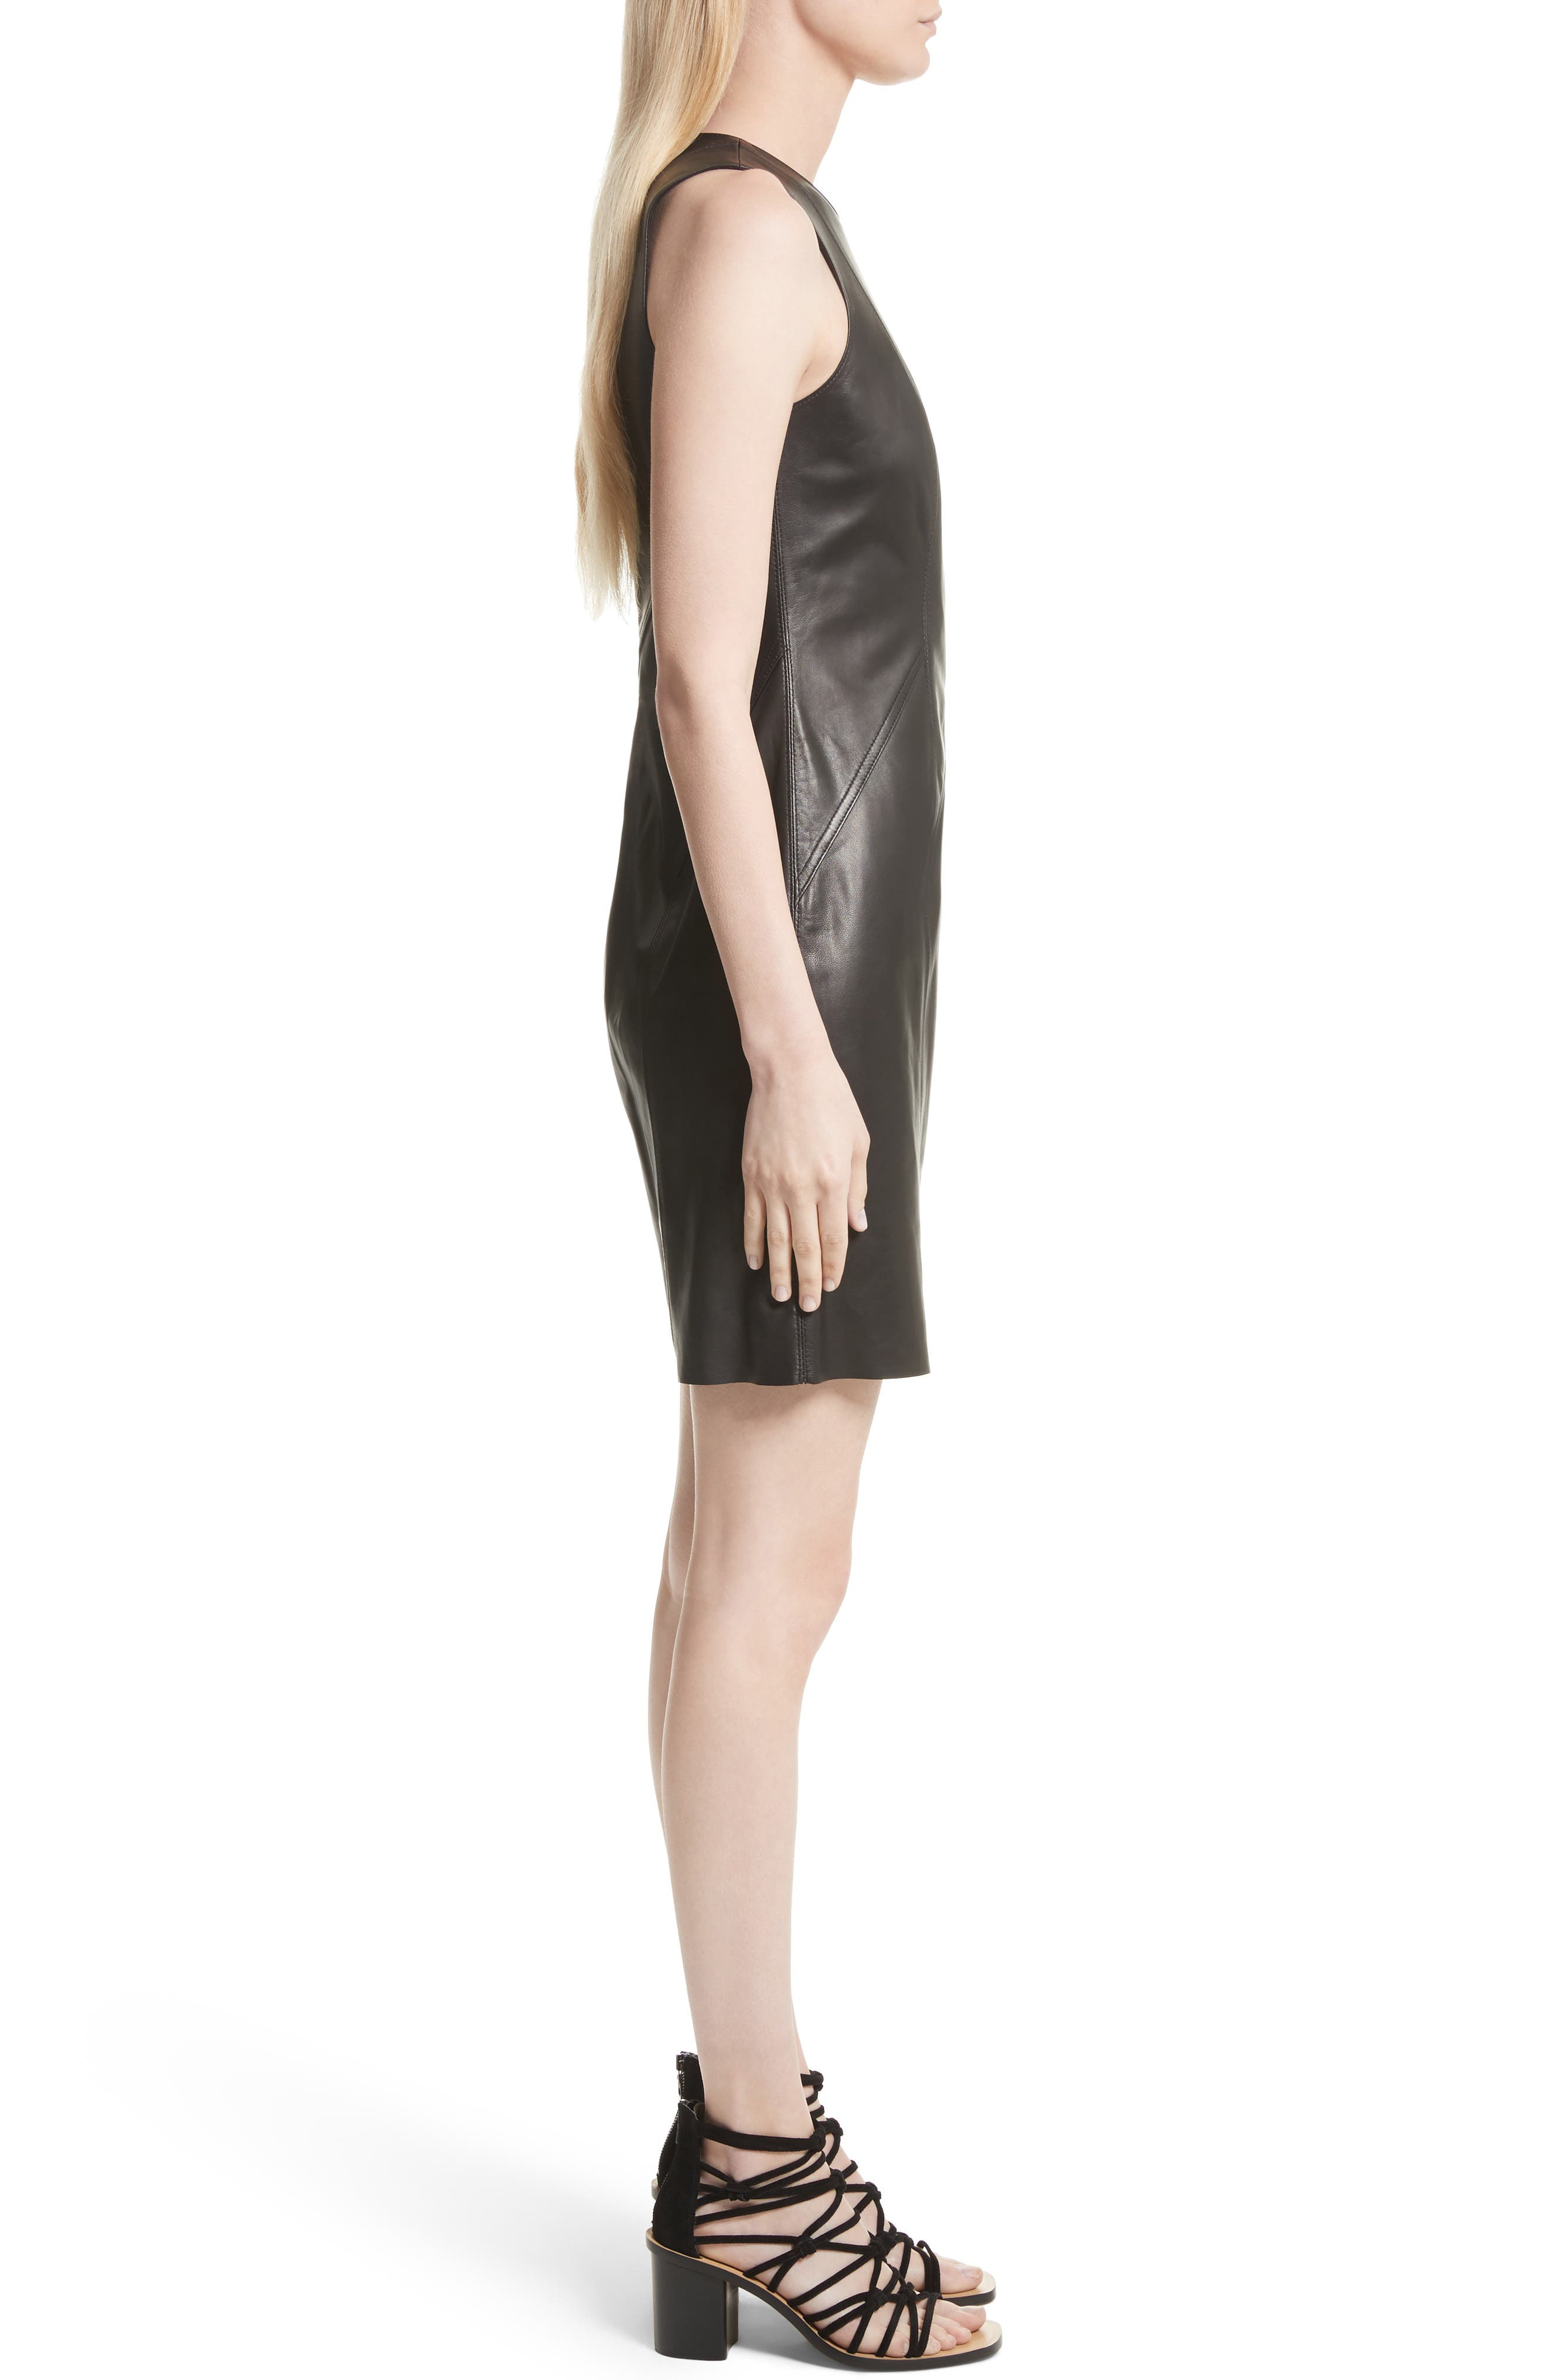 Loxley Leather Dress,                             Alternate thumbnail 3, color,                             001